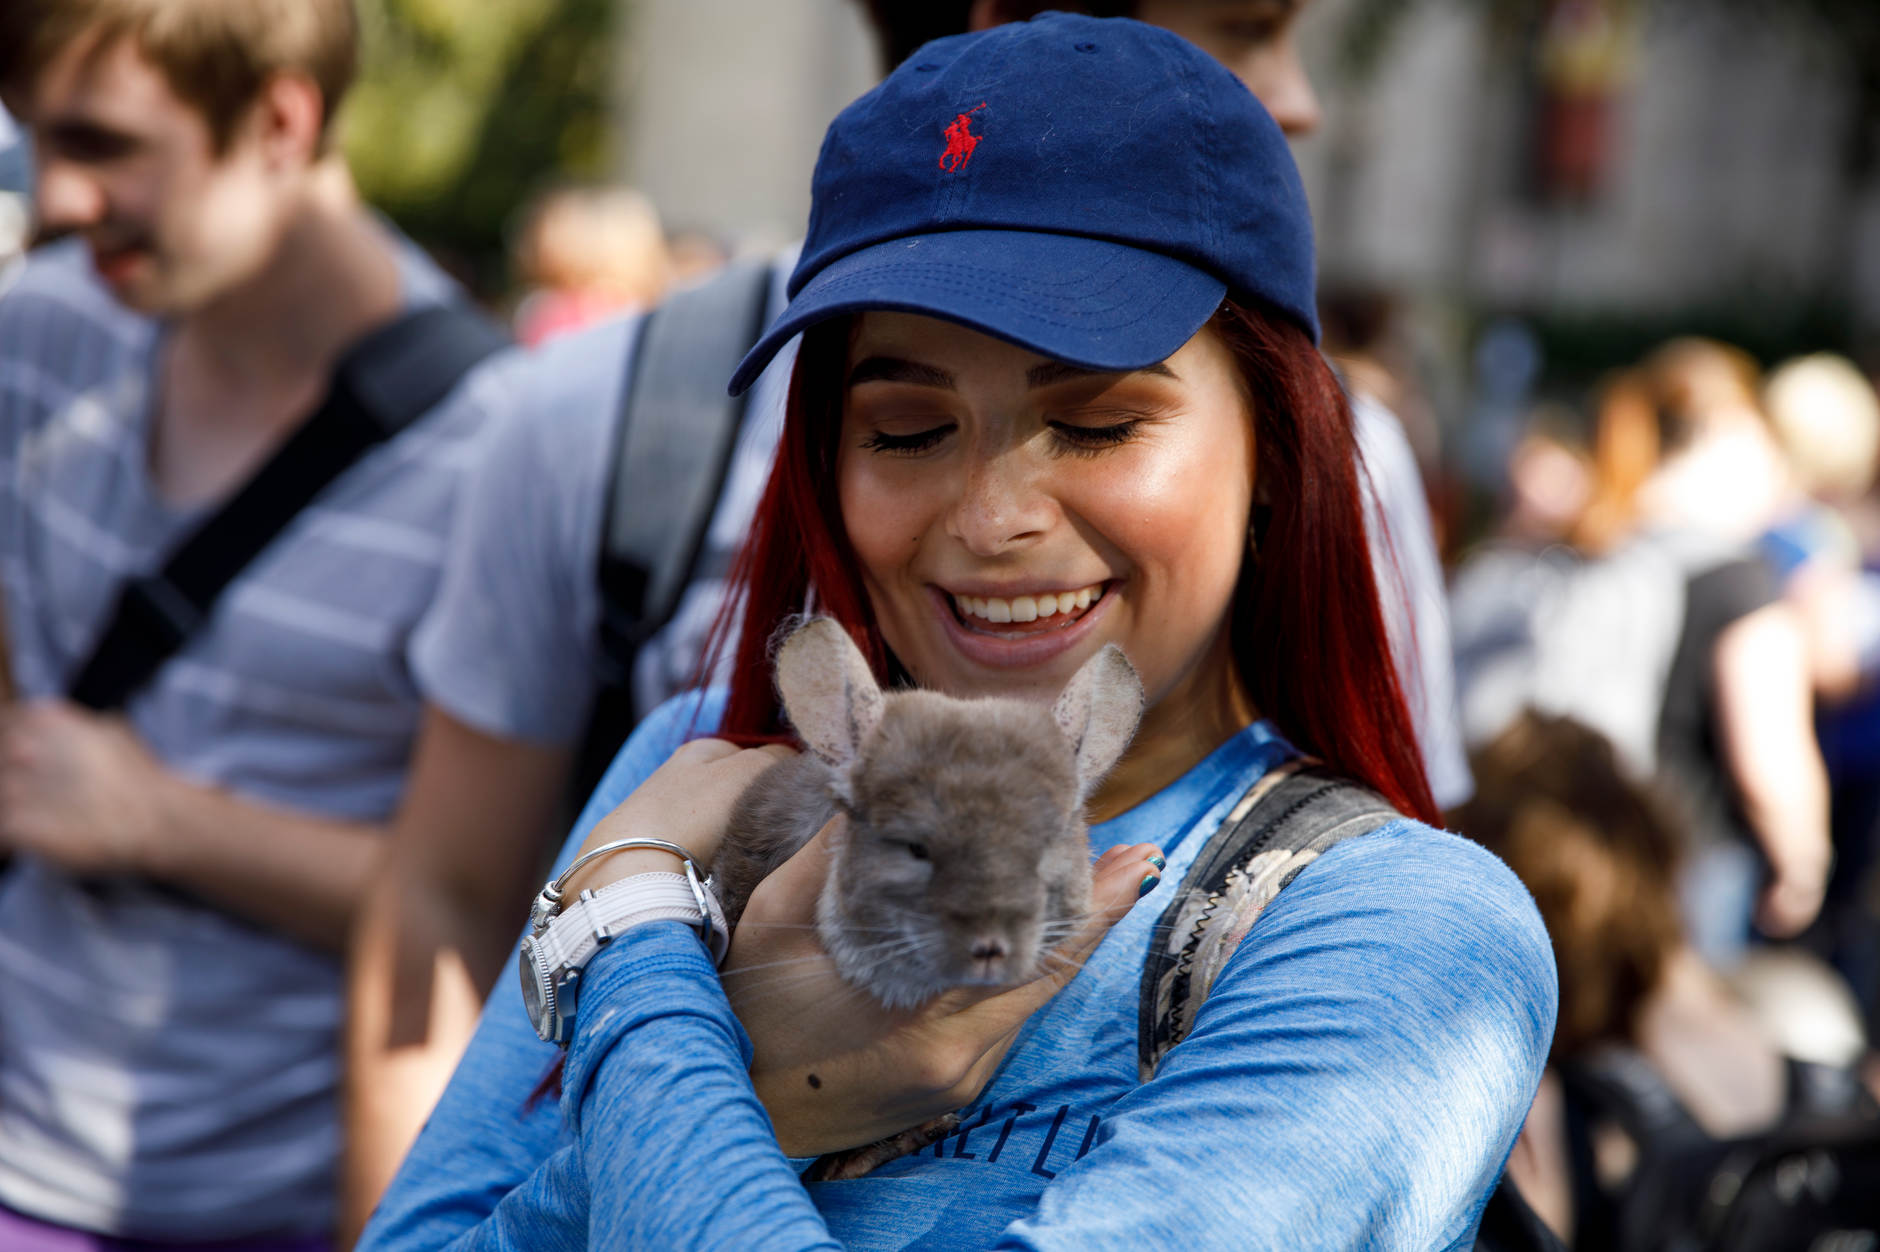 Indiana University freshman Erika Kalamaros holds Ollie, a chinchilla from Zoo'Opolis Exotic Petting Zoo, during the First Thursdays Festival on the Arts Plaza at IU Bloomington on Thursday, Sept. 5, 2019. (James Brosher/Indiana University)